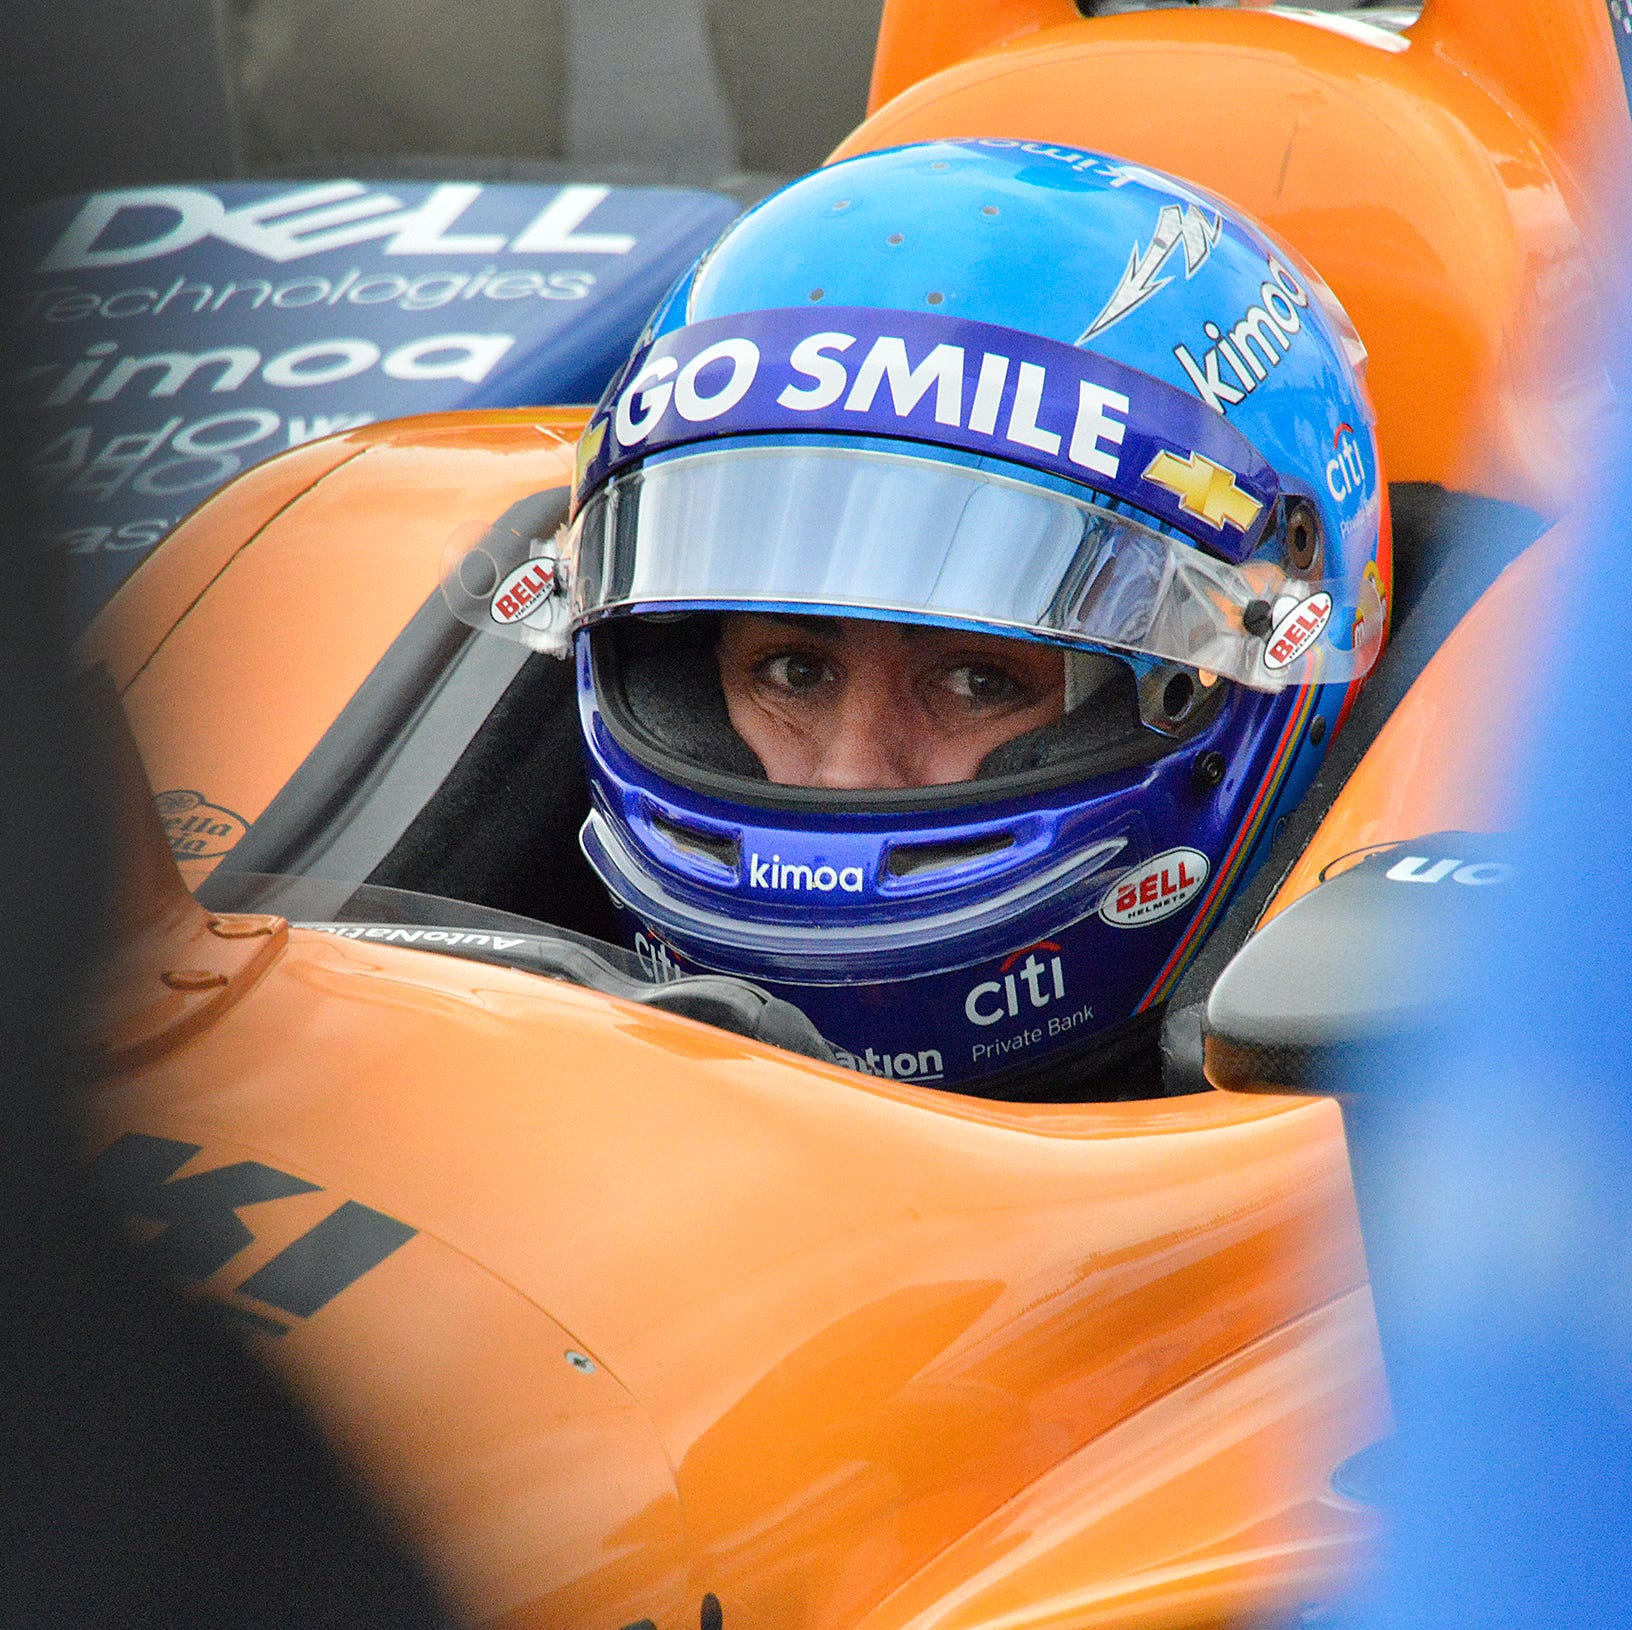 Fernando Alonso bumped from Indy 500 by Kyle Kaiser. Twitter is shocked.